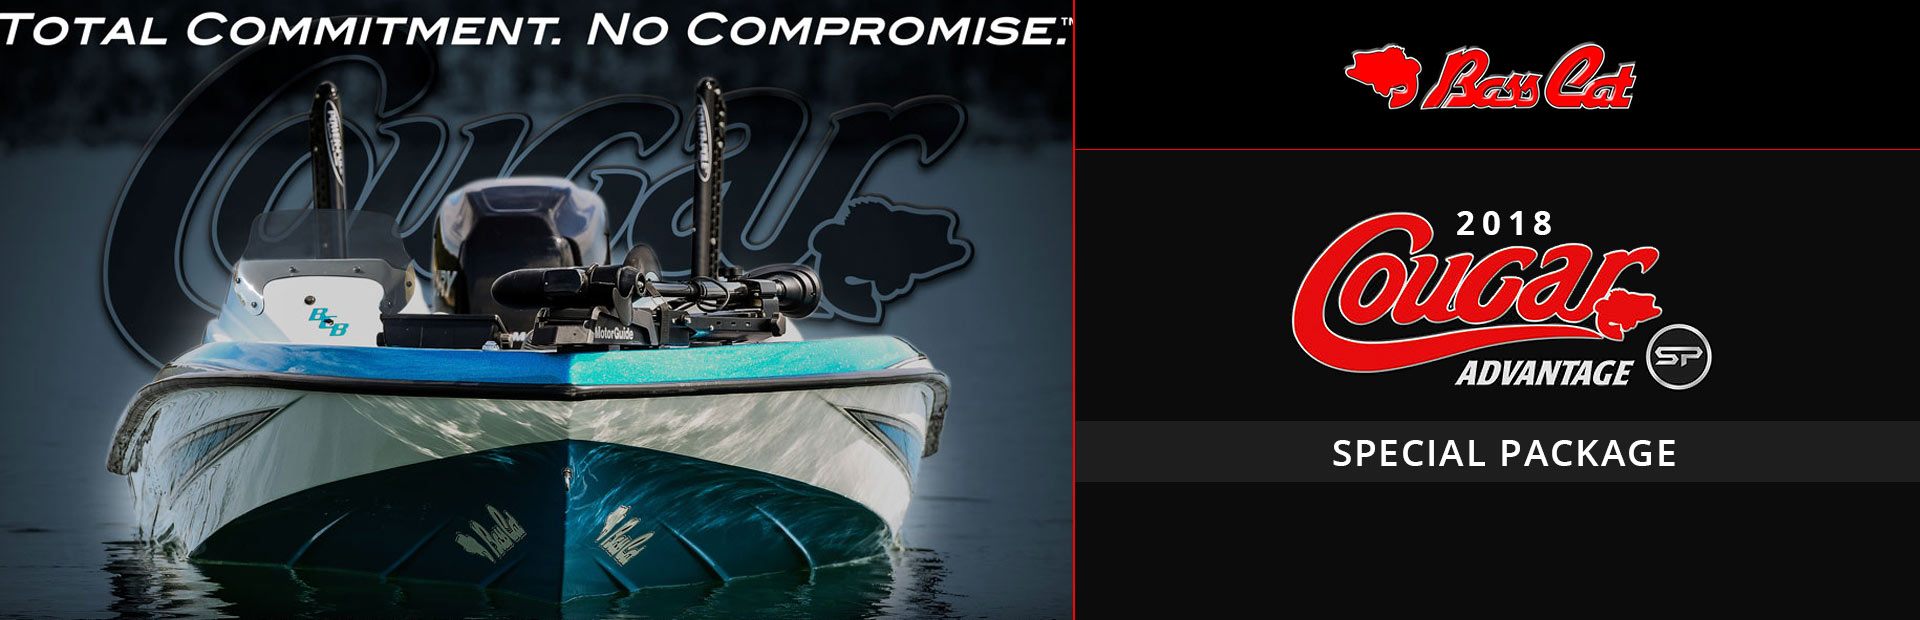 Bass Cat Boats: 2018 Cougar Advantage Special Package